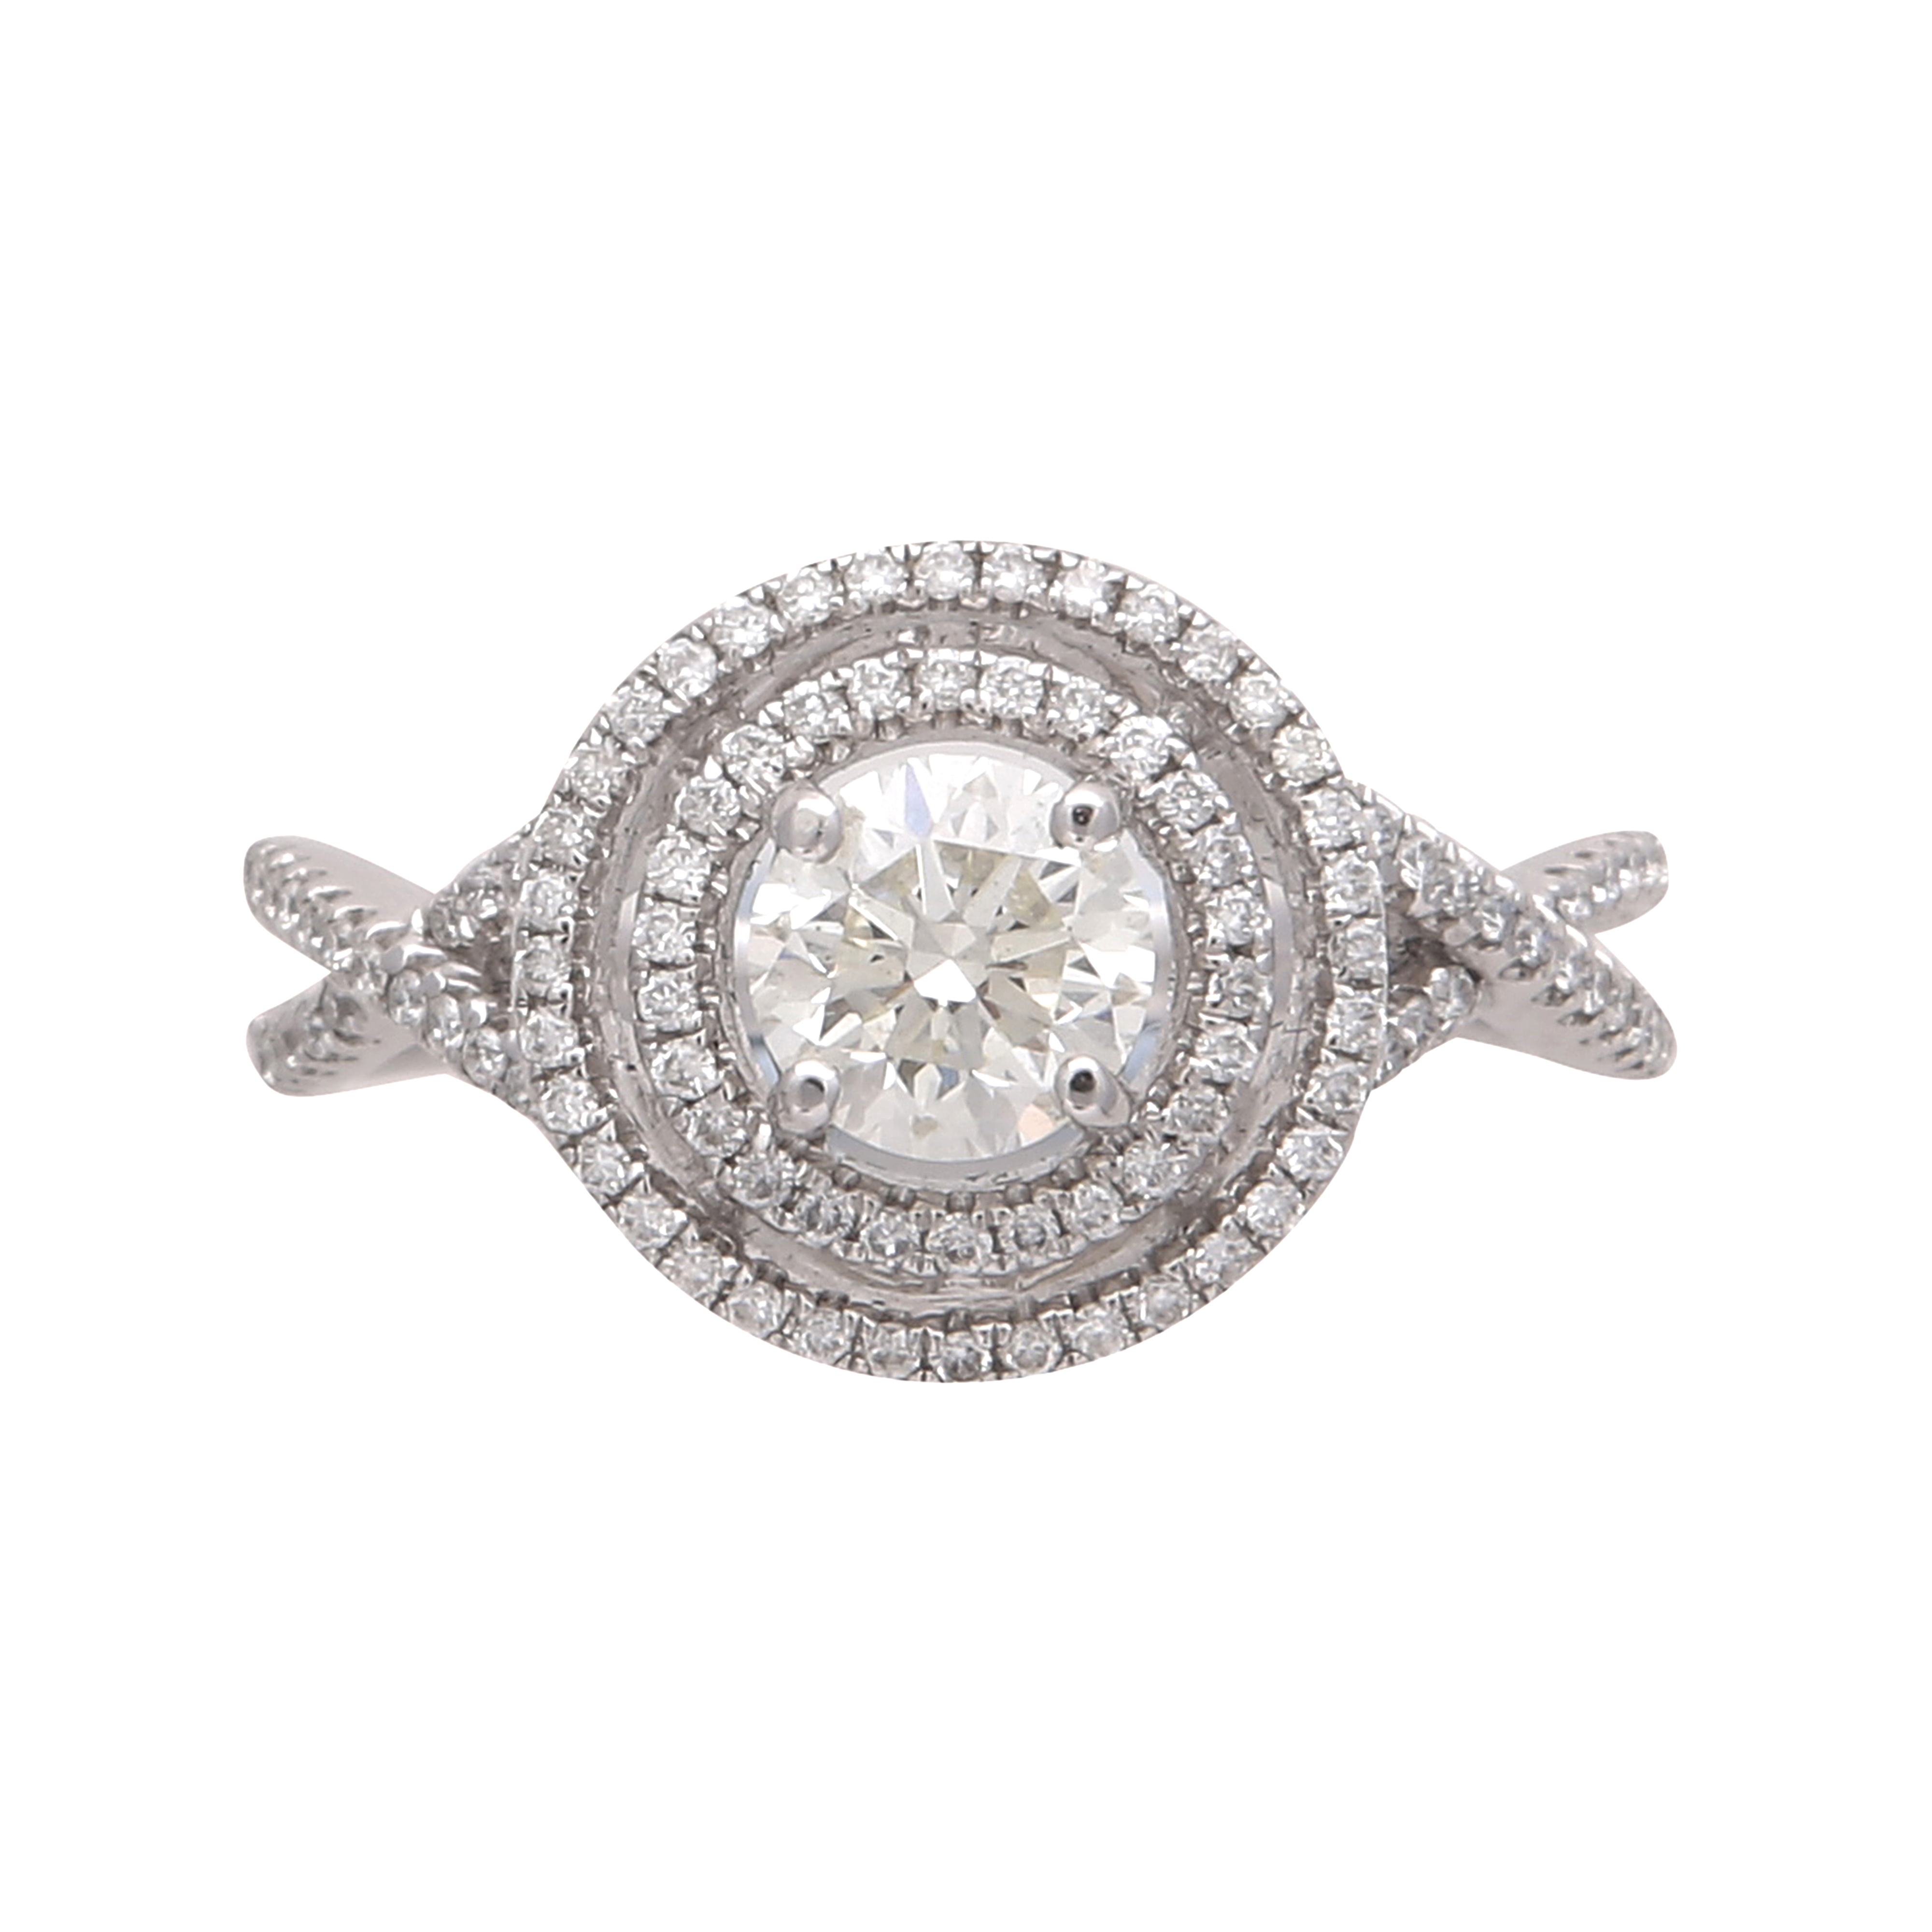 Los 191 - A solitaire diamond halo ring in 18ct white gold, the claw set round cut diamond weighing